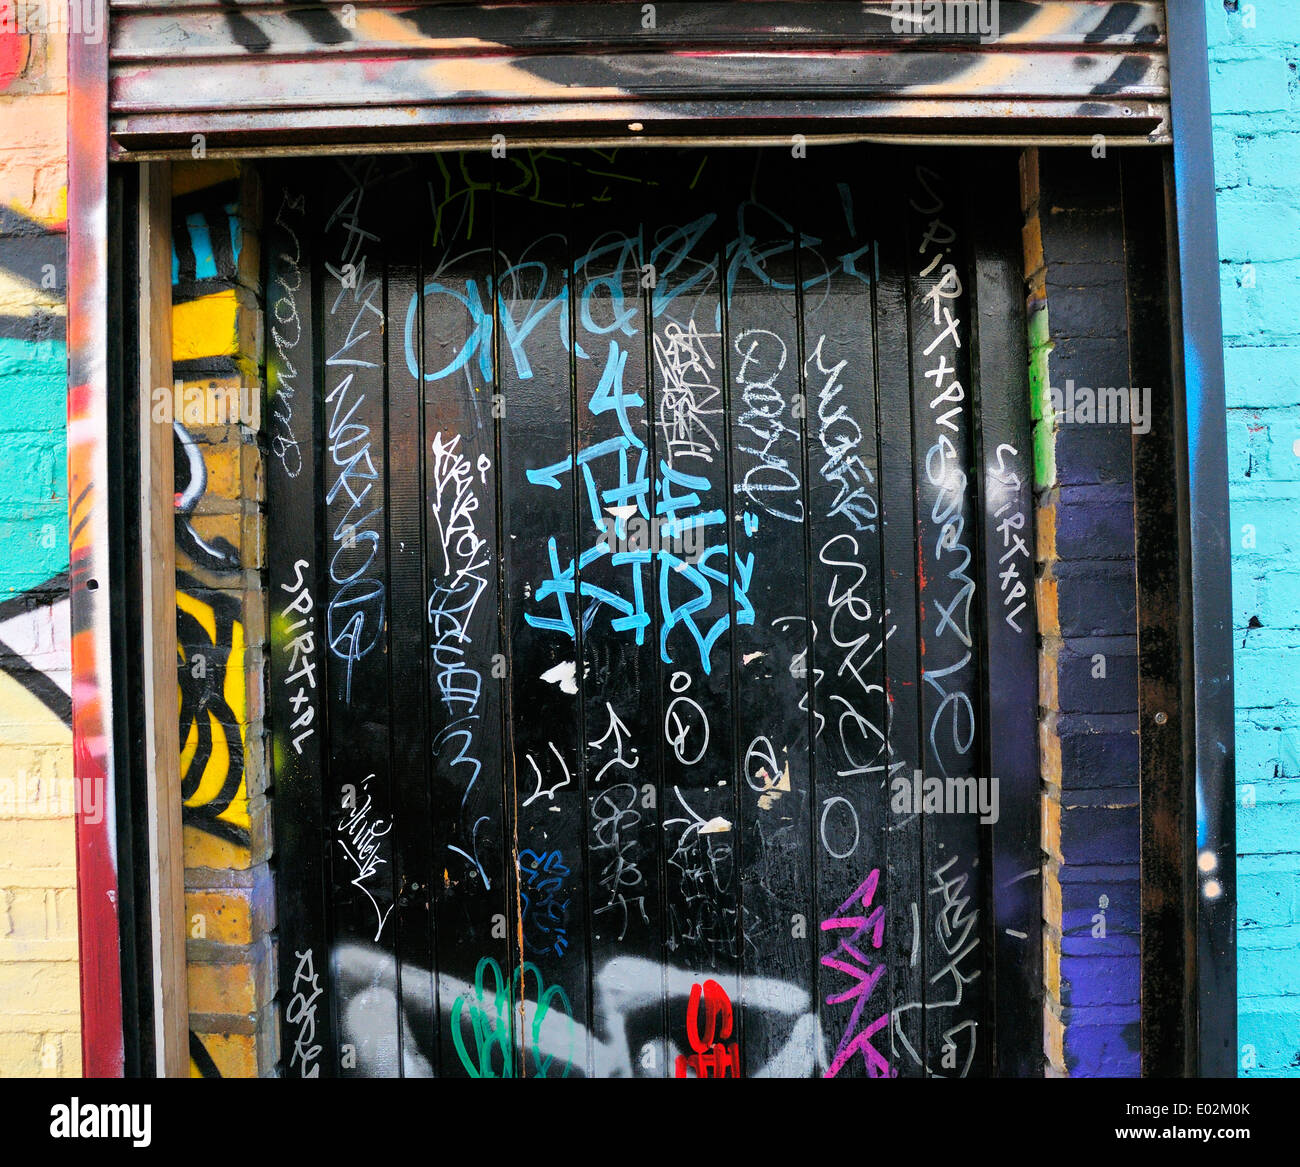 Graffiti tags on black door - Stock Image